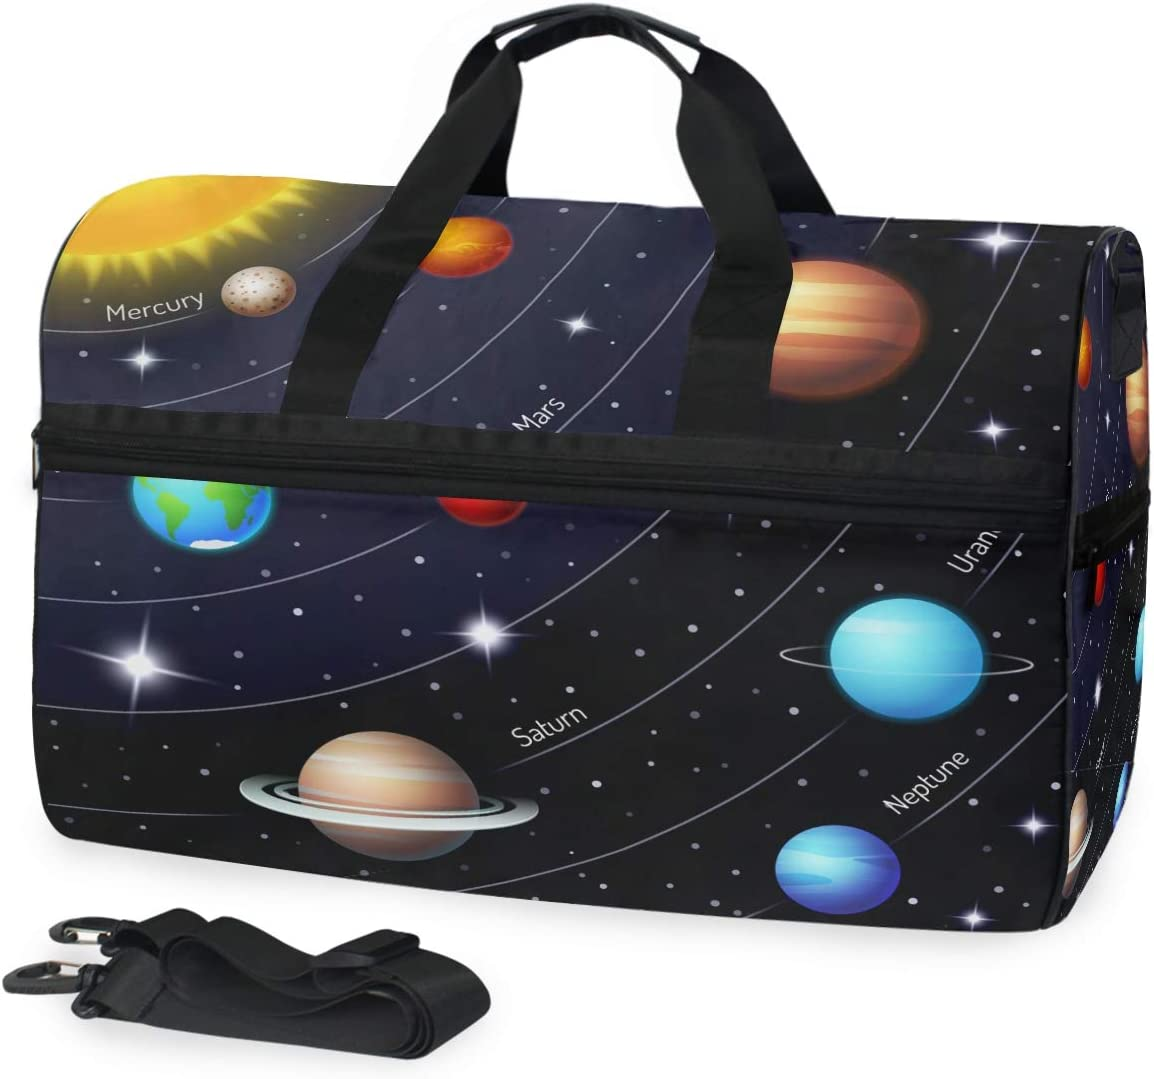 ALAZA Colorful Solar System Twinkle Stars Sports Gym Duffel Bag Travel Luggage Handbag Shoulder Bag with Shoes Compartment for Men Women